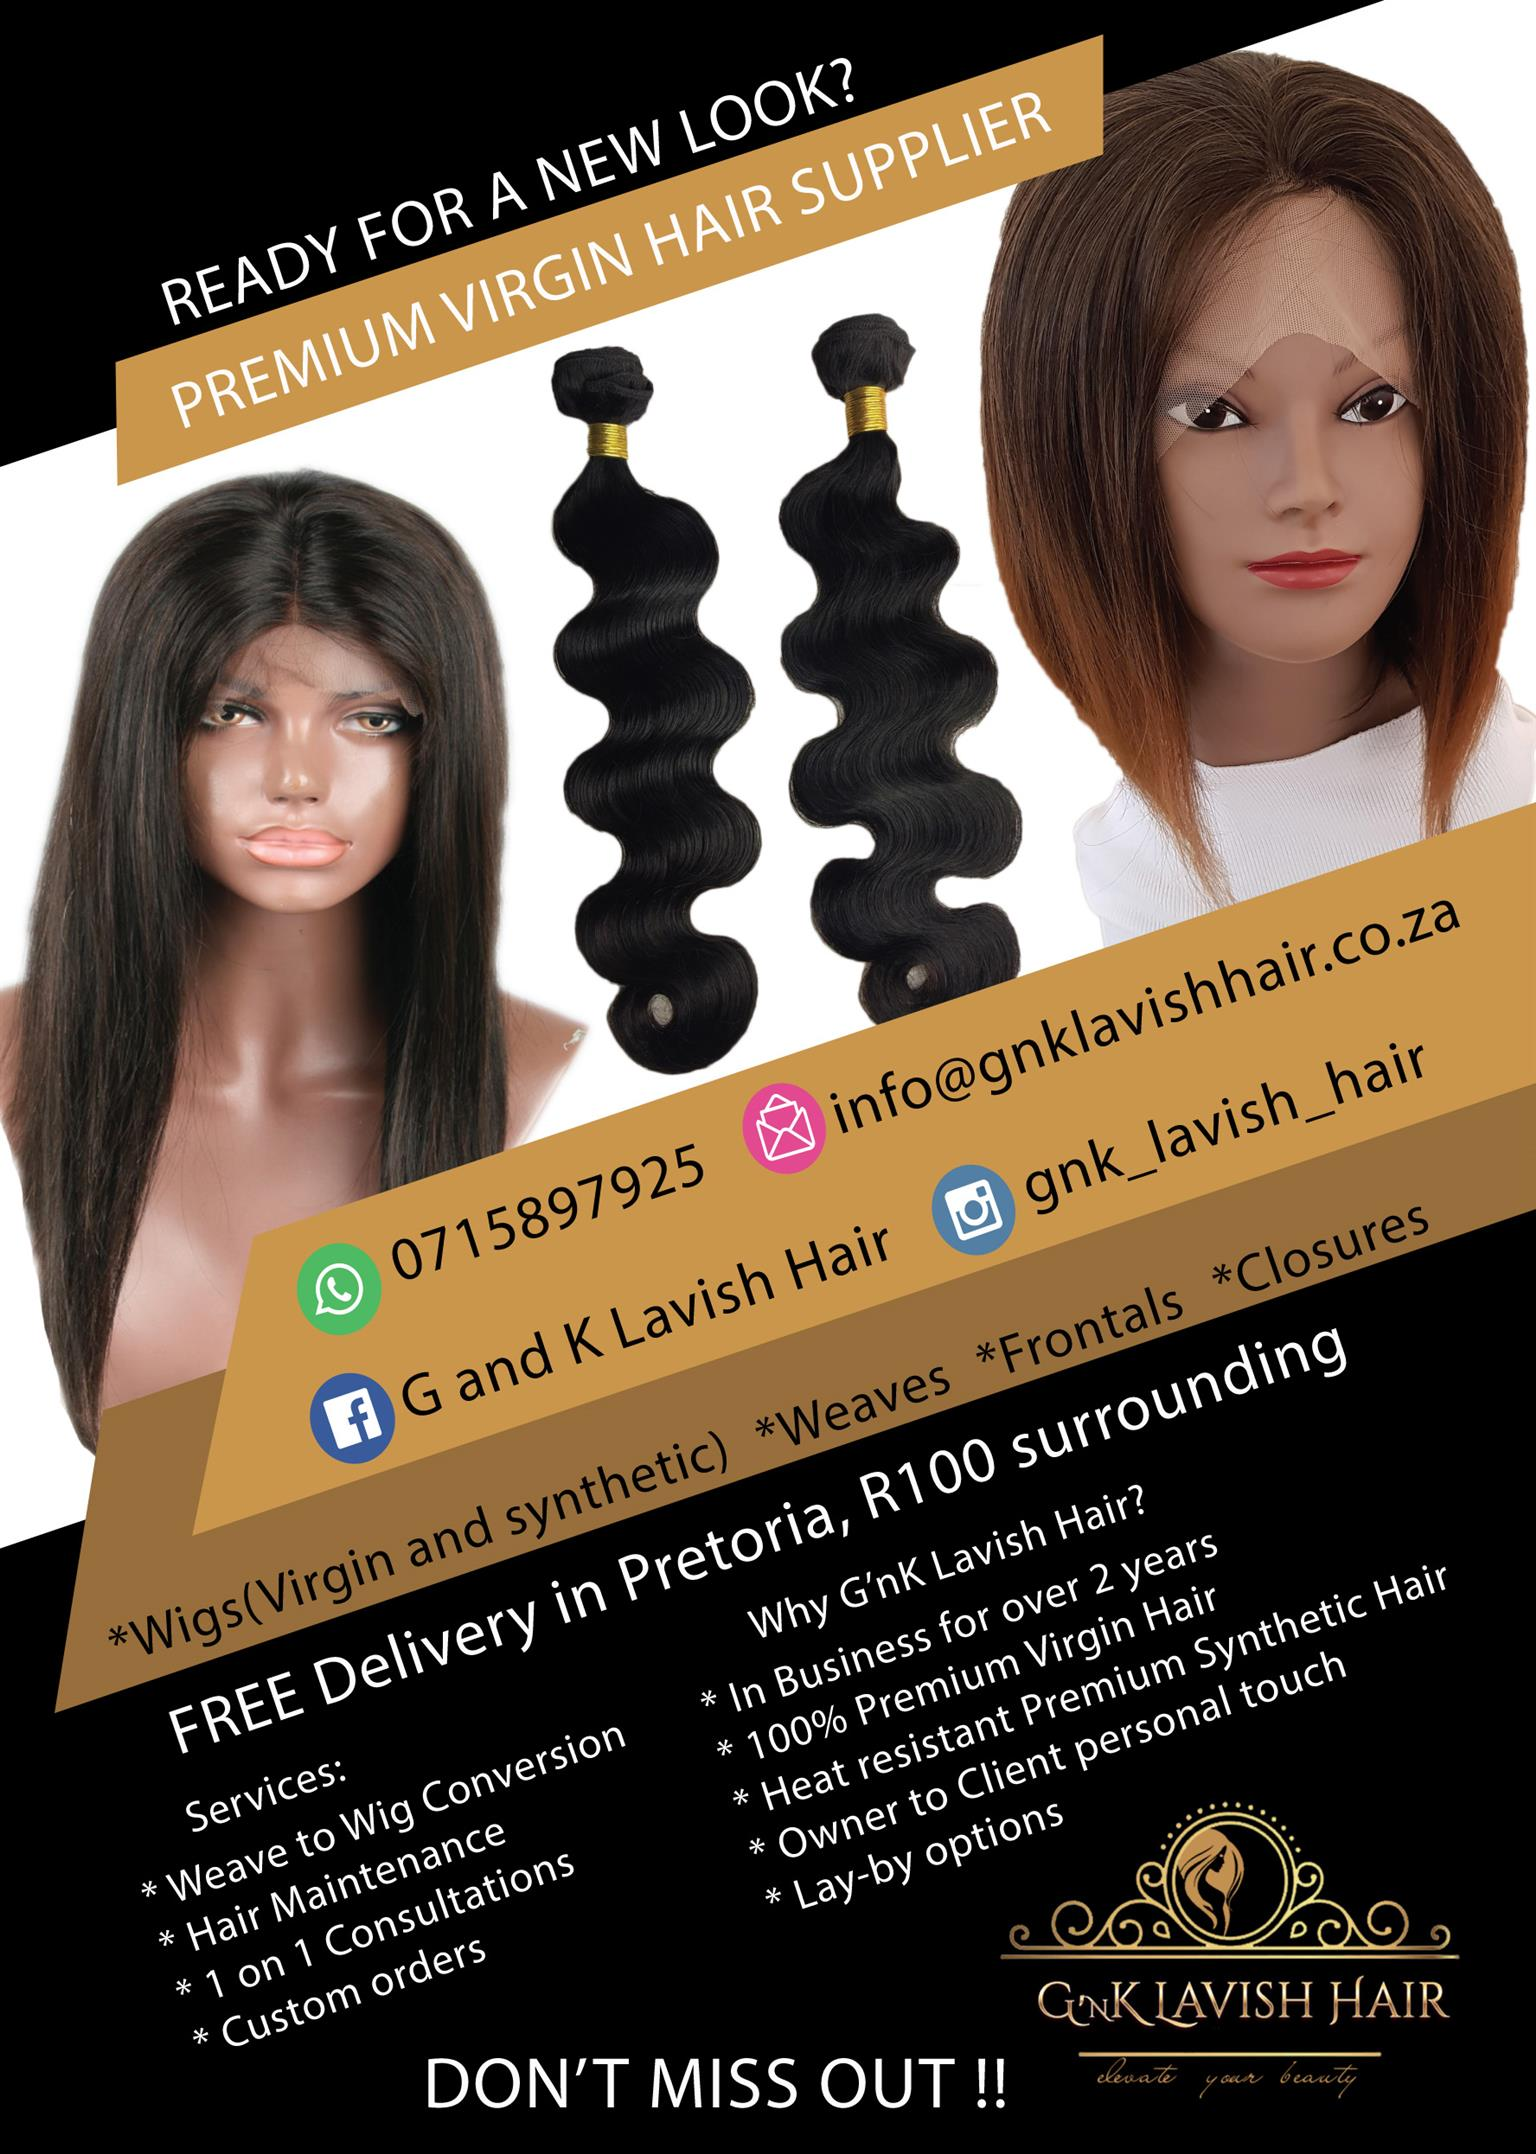 Premium Lace Front Wigs And Weave Hair Extensions 100 Virgin